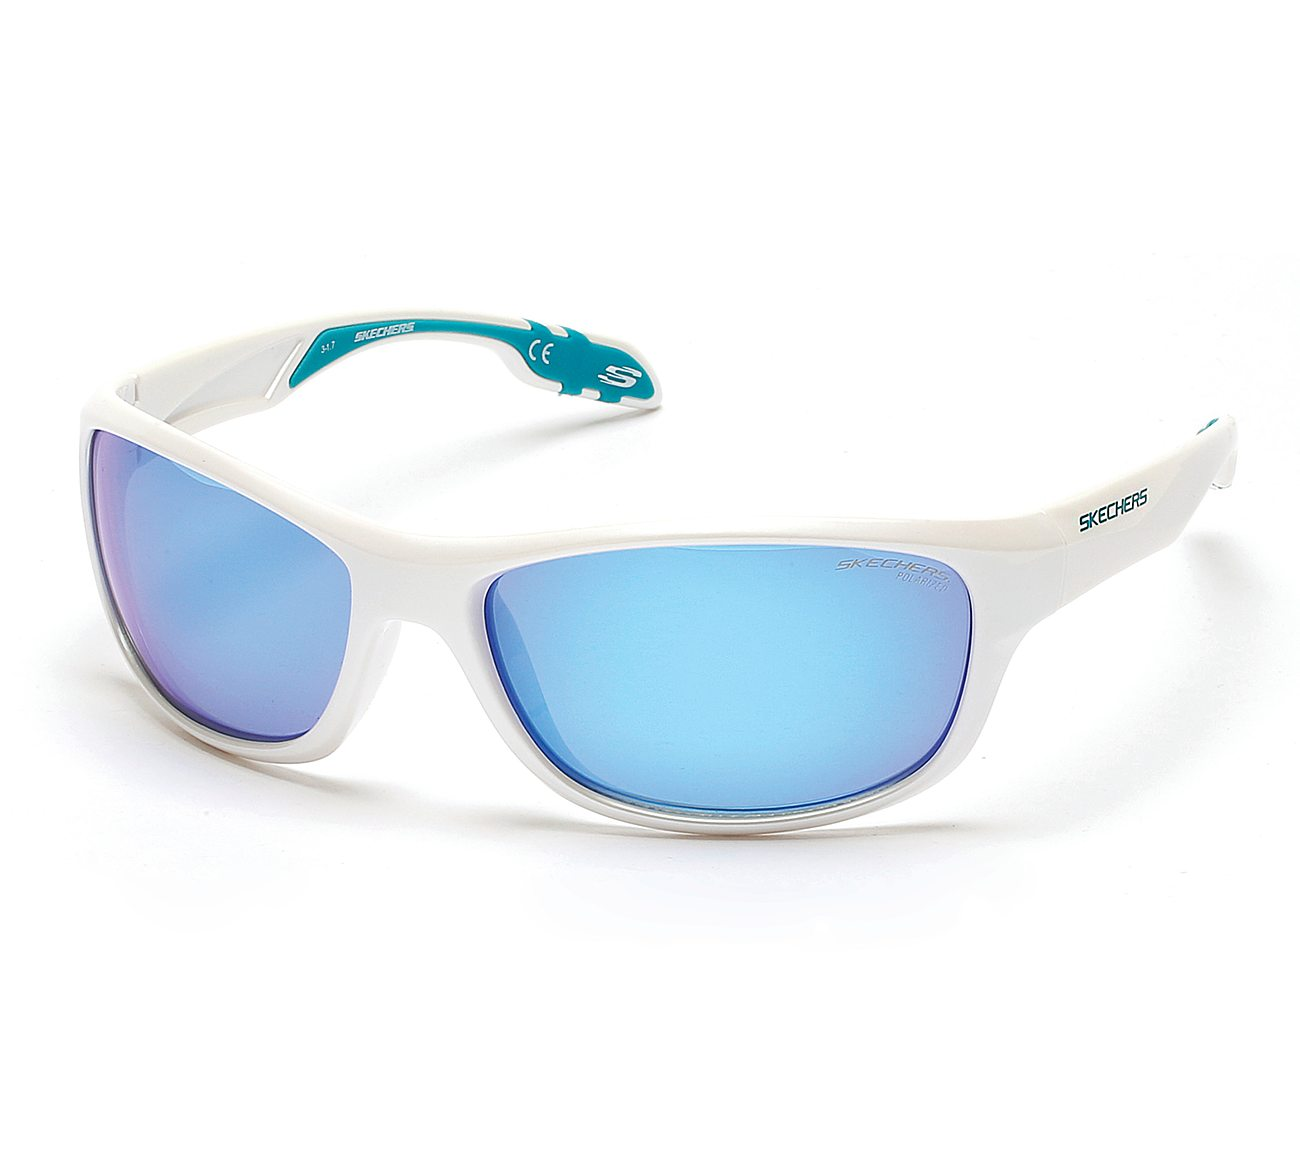 Buy SKECHERS Sport Wrap Color Sunglasses Accessories Shoes only $17.00